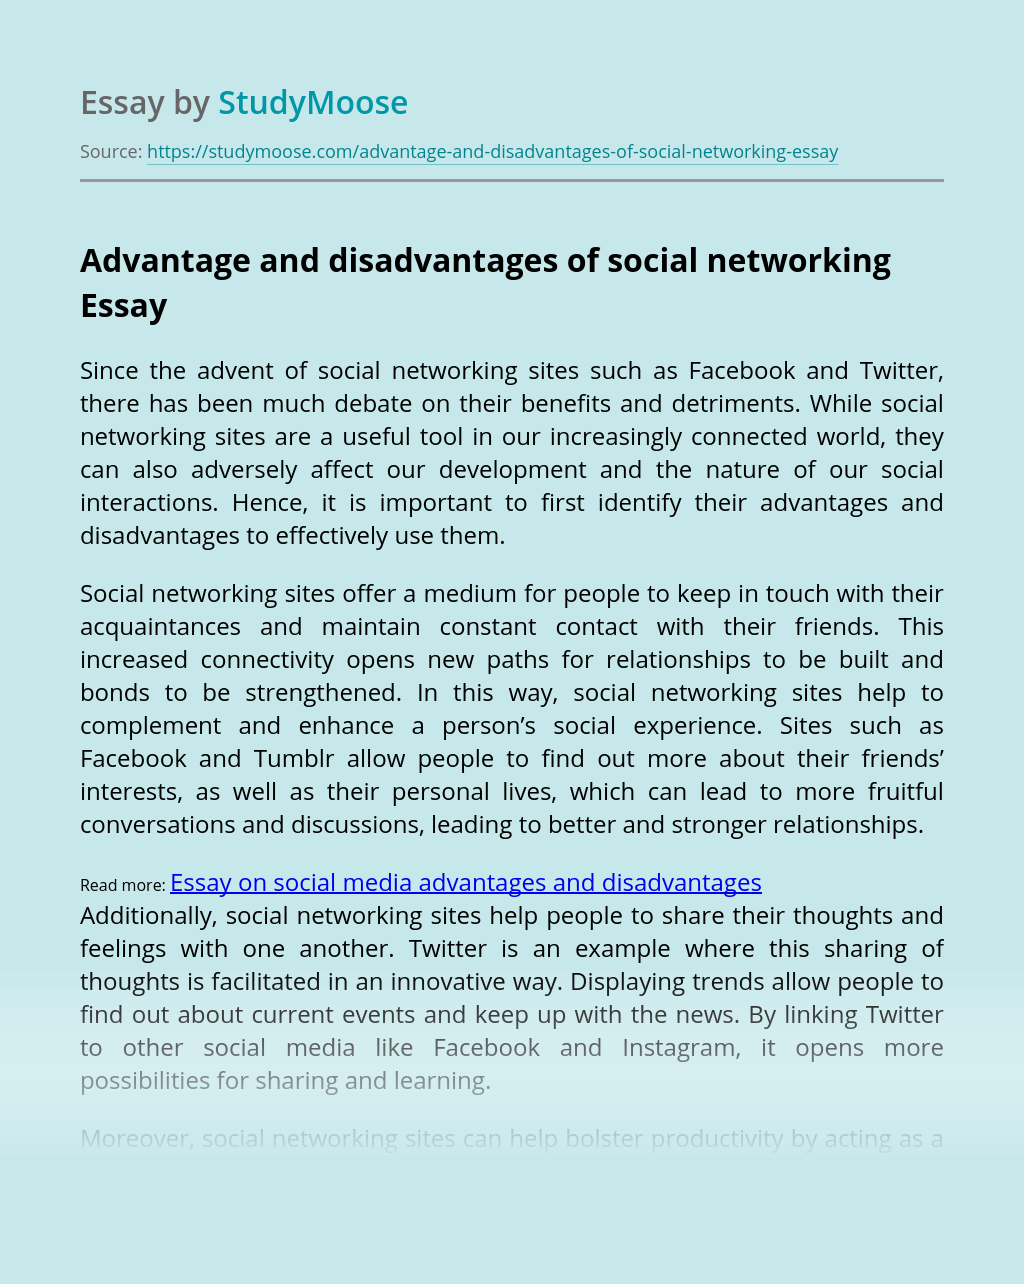 Advantage and disadvantages of social networking